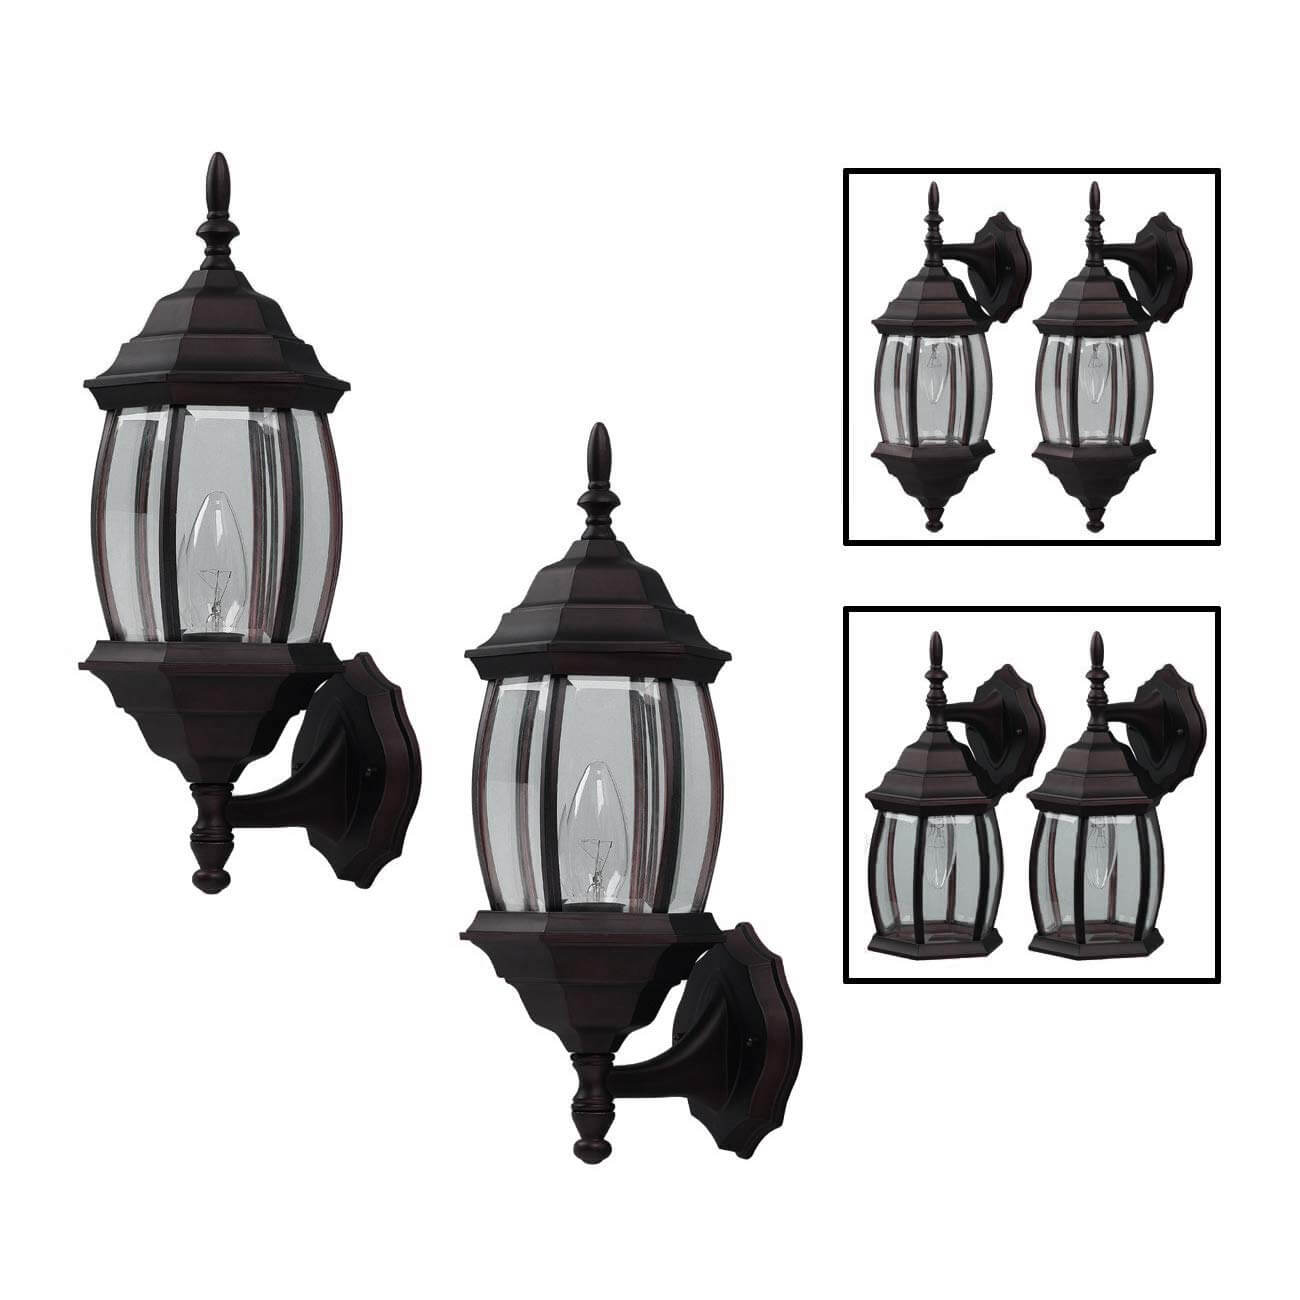 OUTDOOR EXTERIOR LANTERN LIGHT FIXTURE WALL SCONCE TWIN PACK FOR GARAGE LIGHTING IDEAS